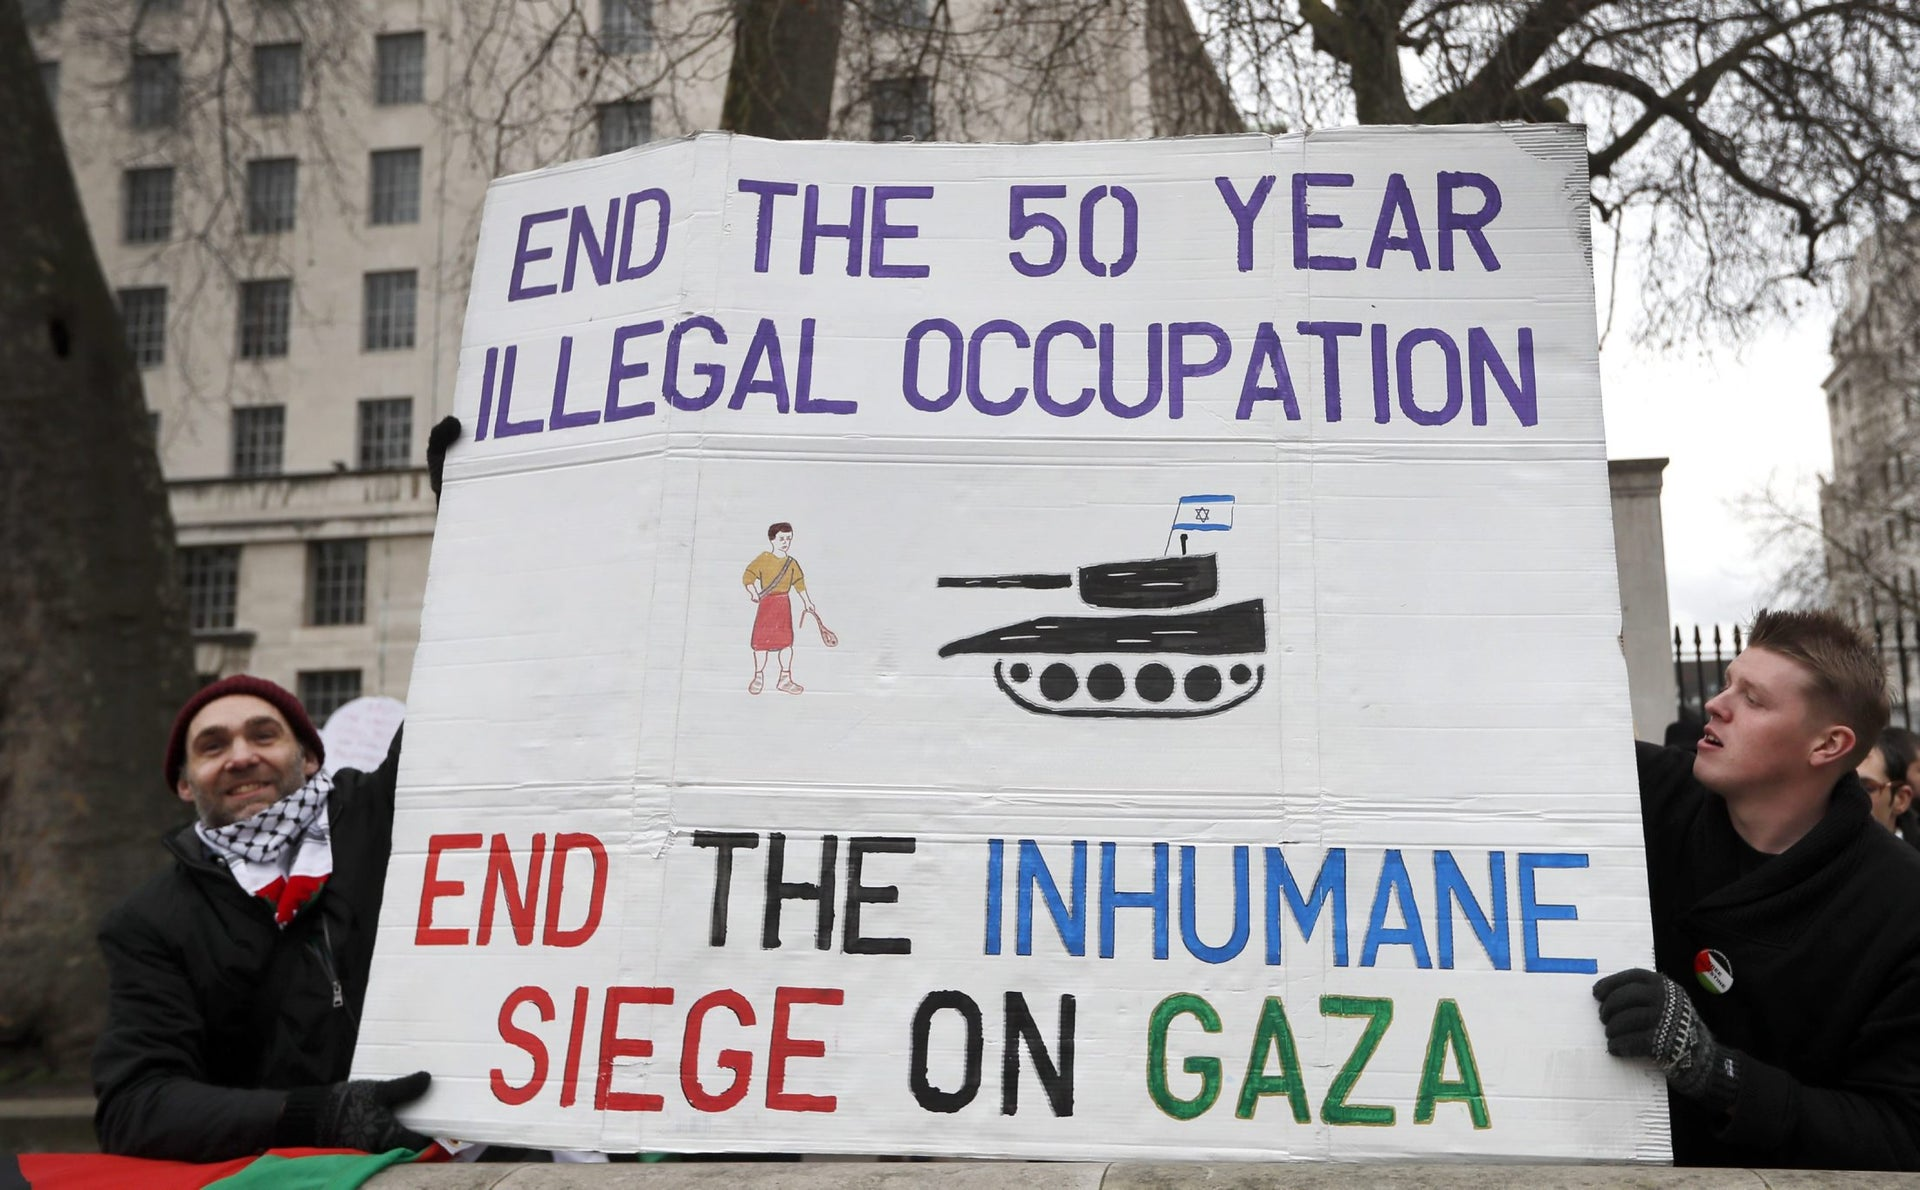 Demonstrators hold a banner calling to end the Israeli occupation, in London, during Prime Minister Benjamin Netanyahu's visit, Feb. 6, 2017.